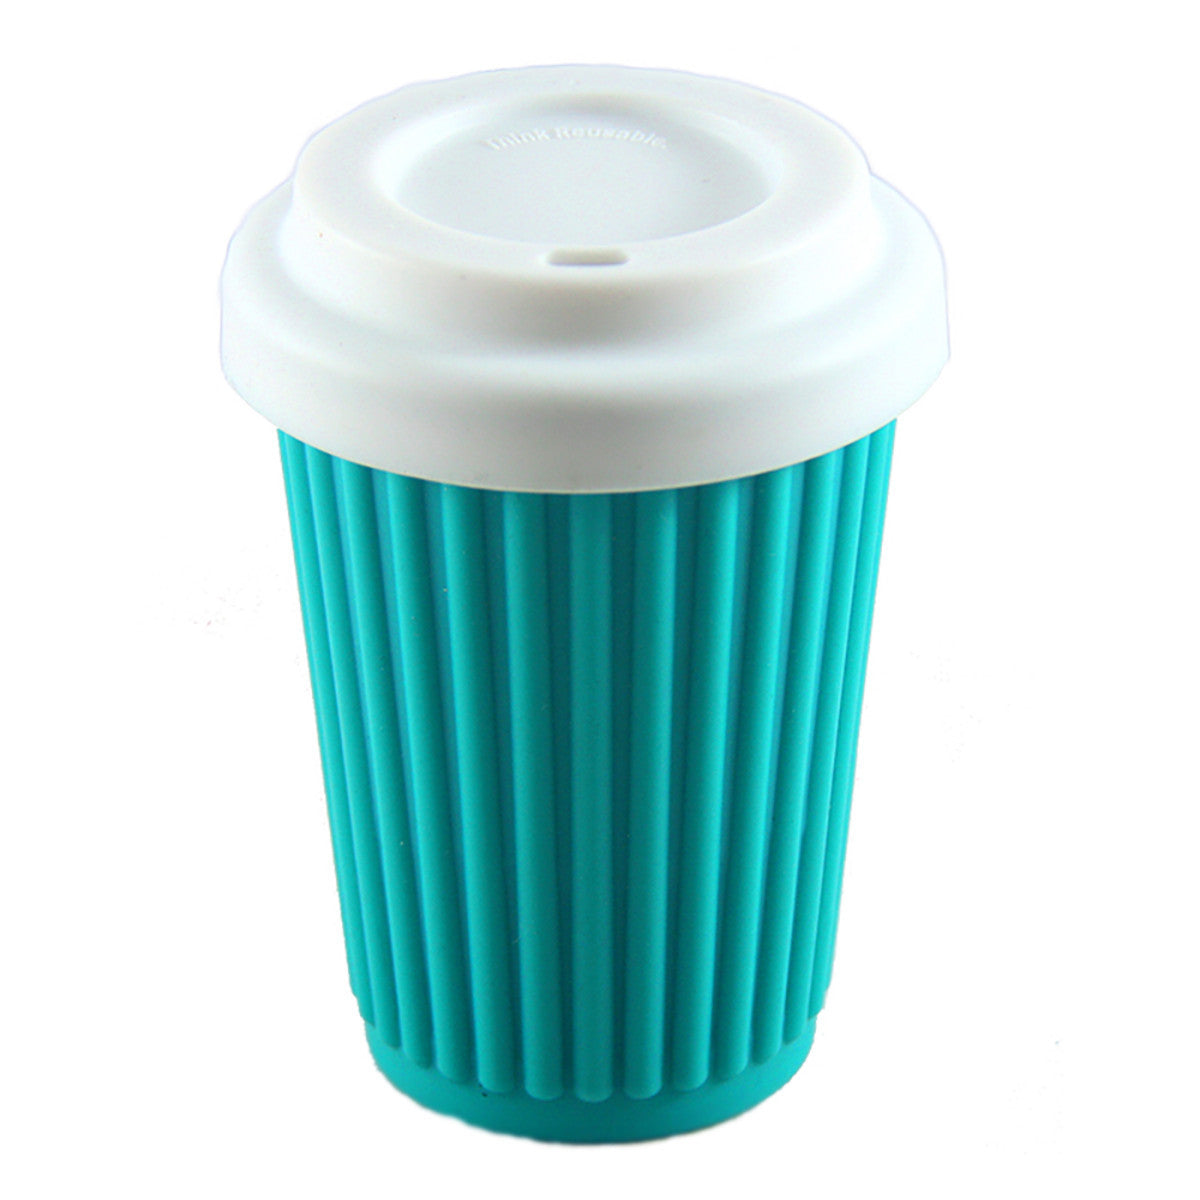 Onya Reusable Coffee Cup Regular (12OZ/355ML) - Aqua